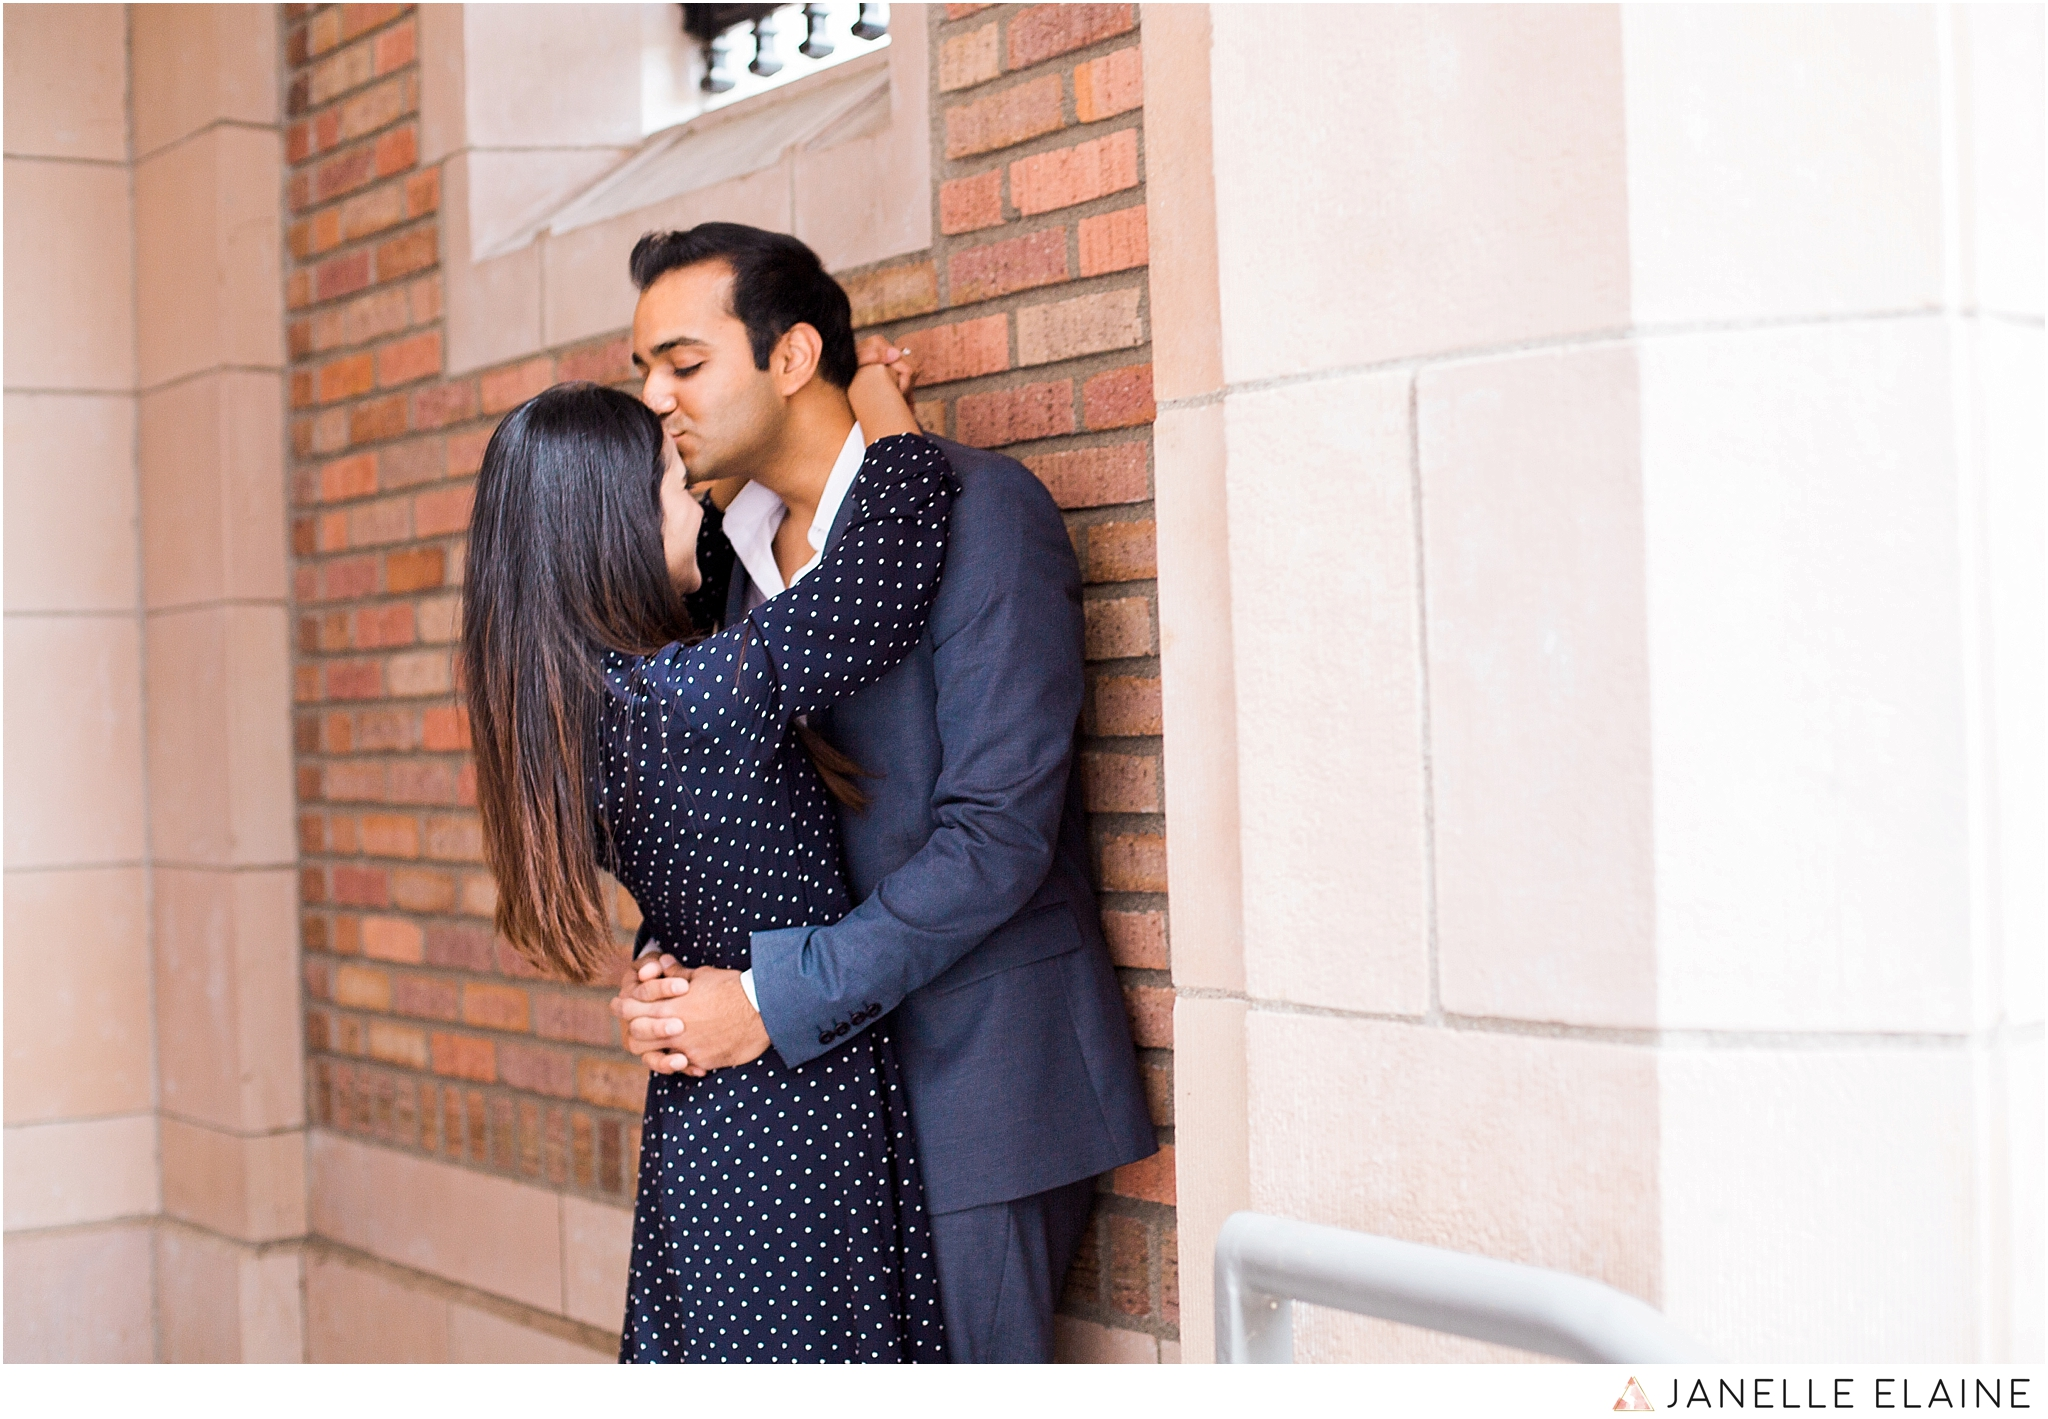 janelle elaine photography-zain and umema-seattle-uw-red square-engagement-photographer-166.jpg